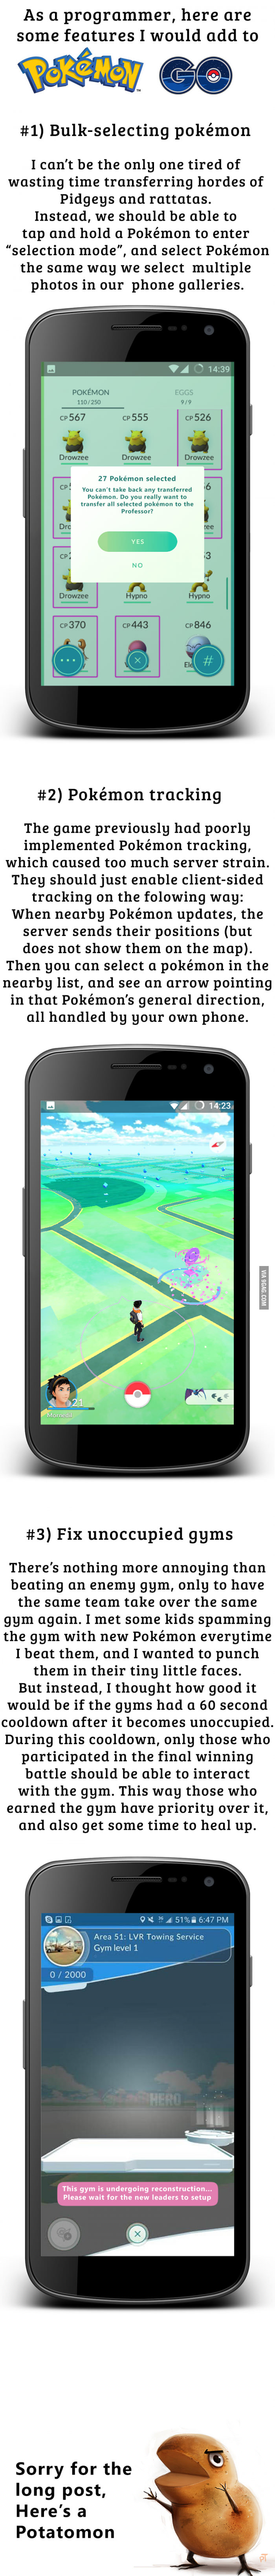 Pokemon Go Features Fixes